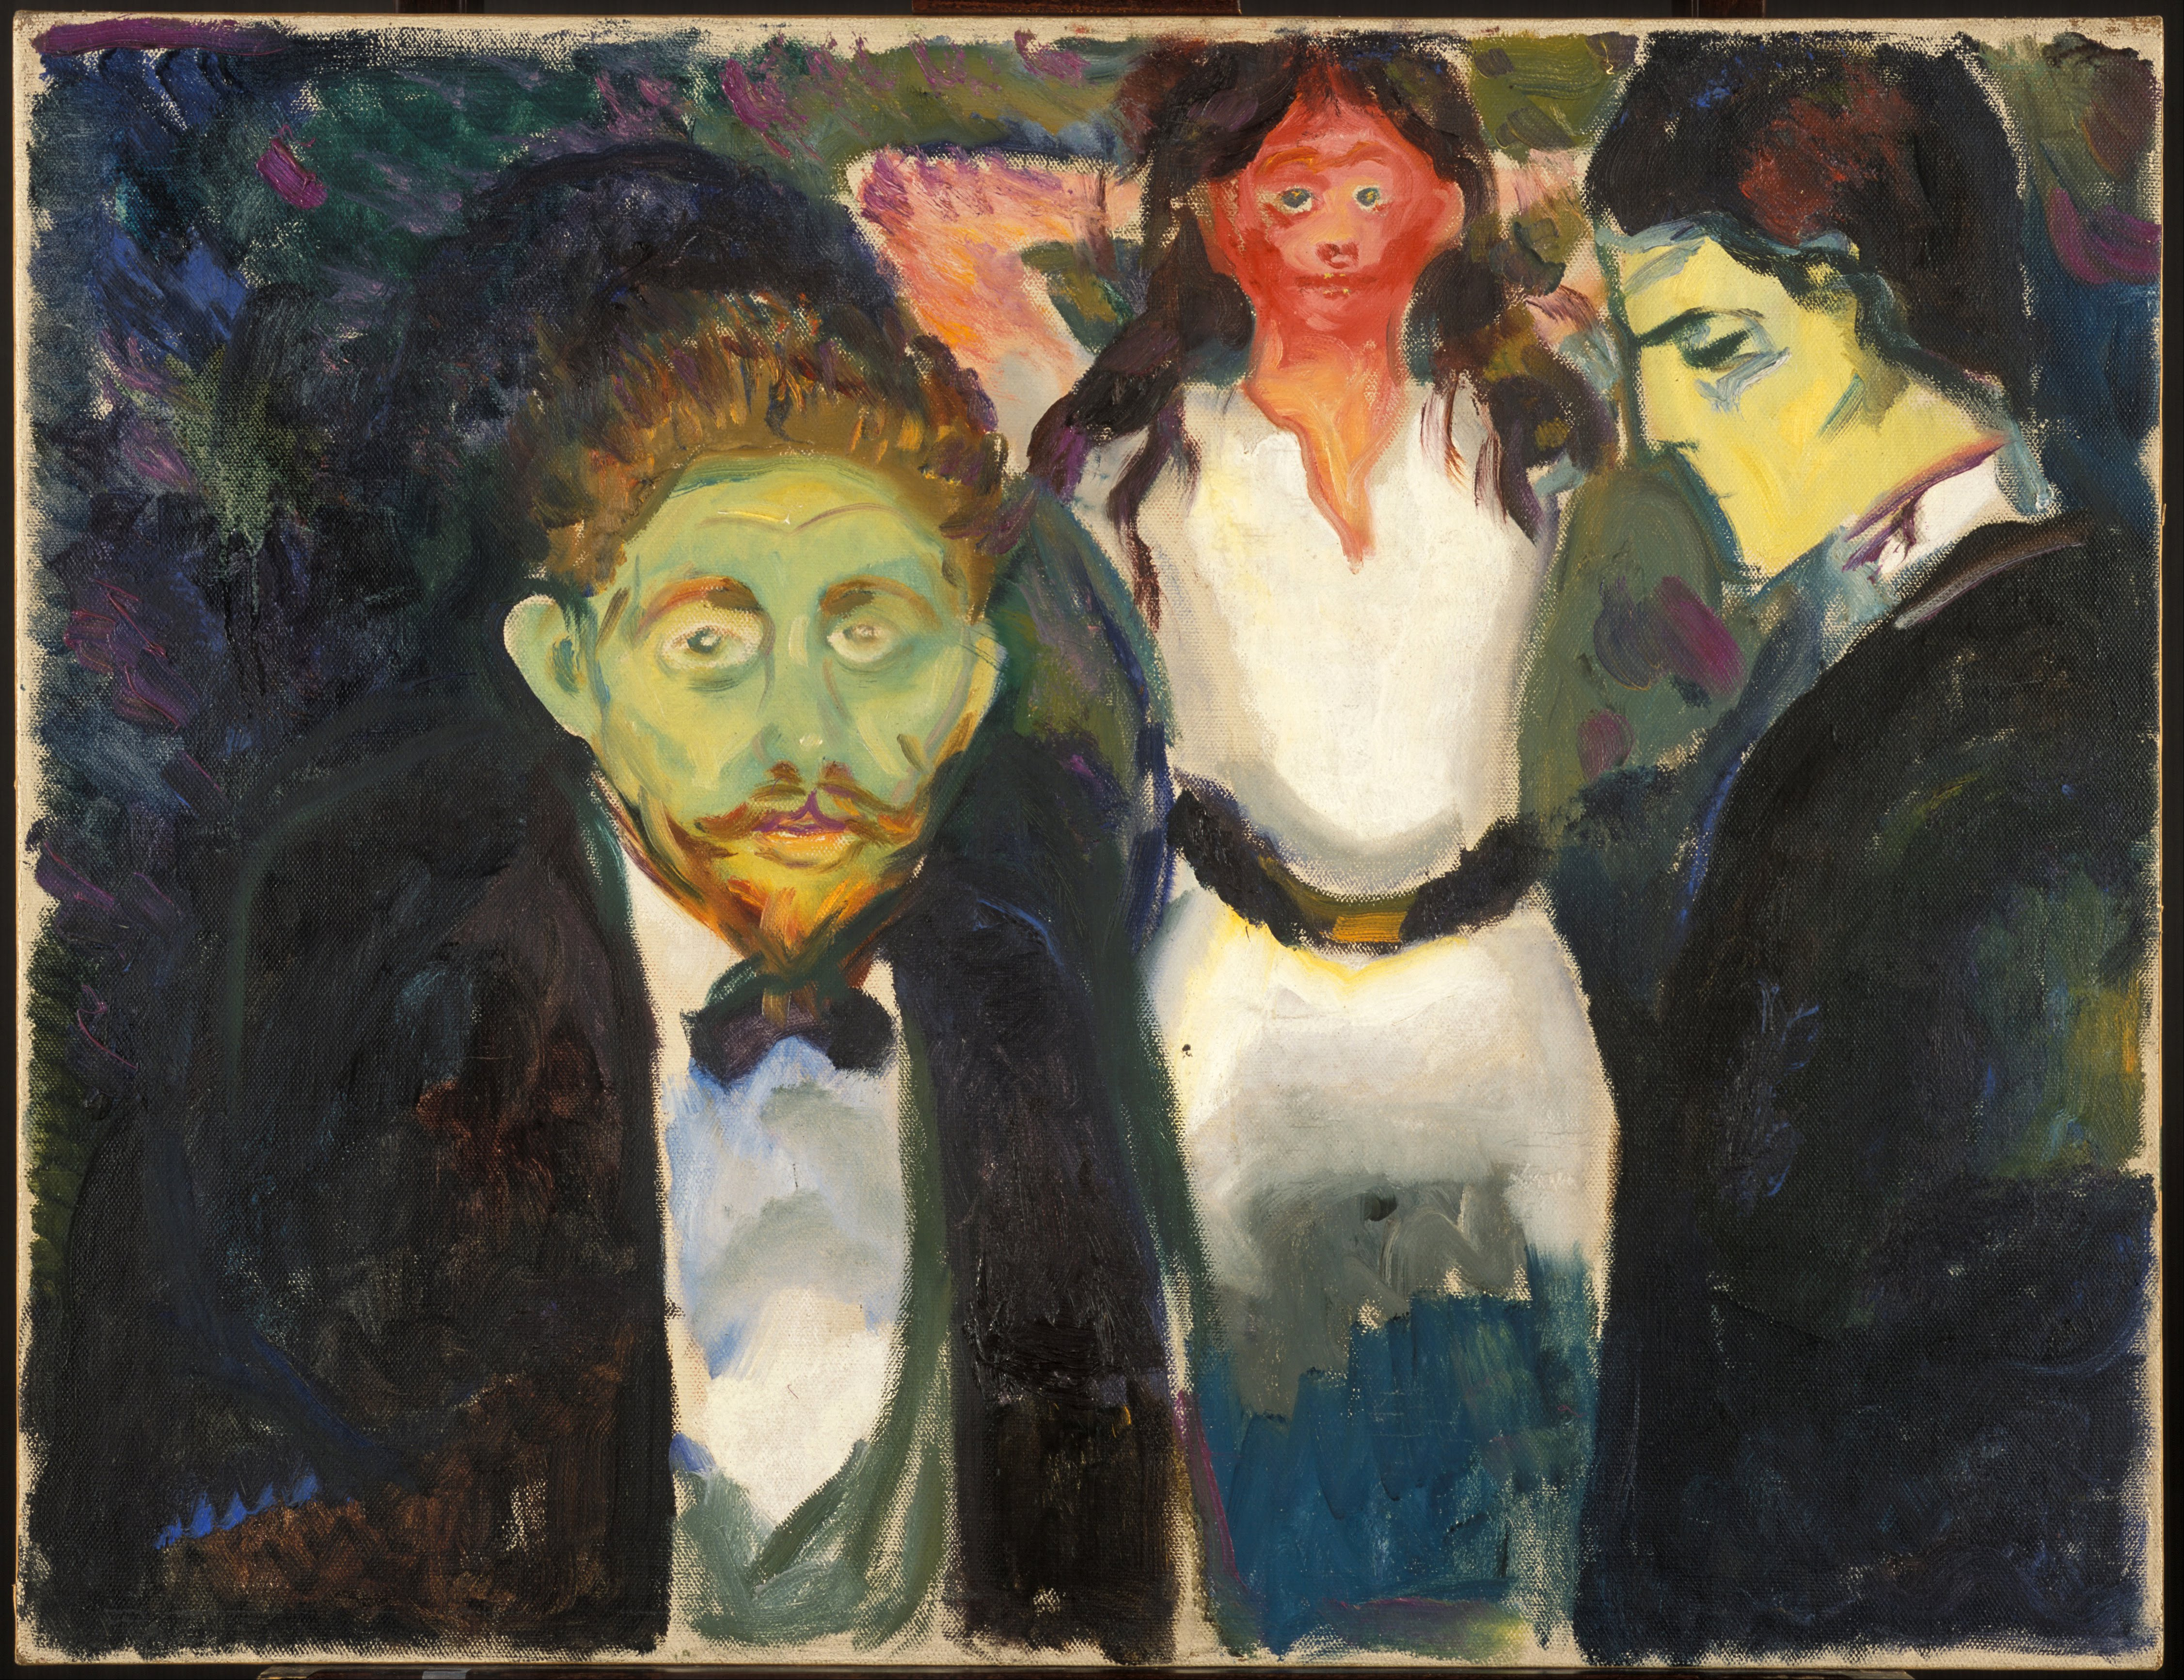 Edvard_Munch_-_Jealousy_-_Google_Art_Project